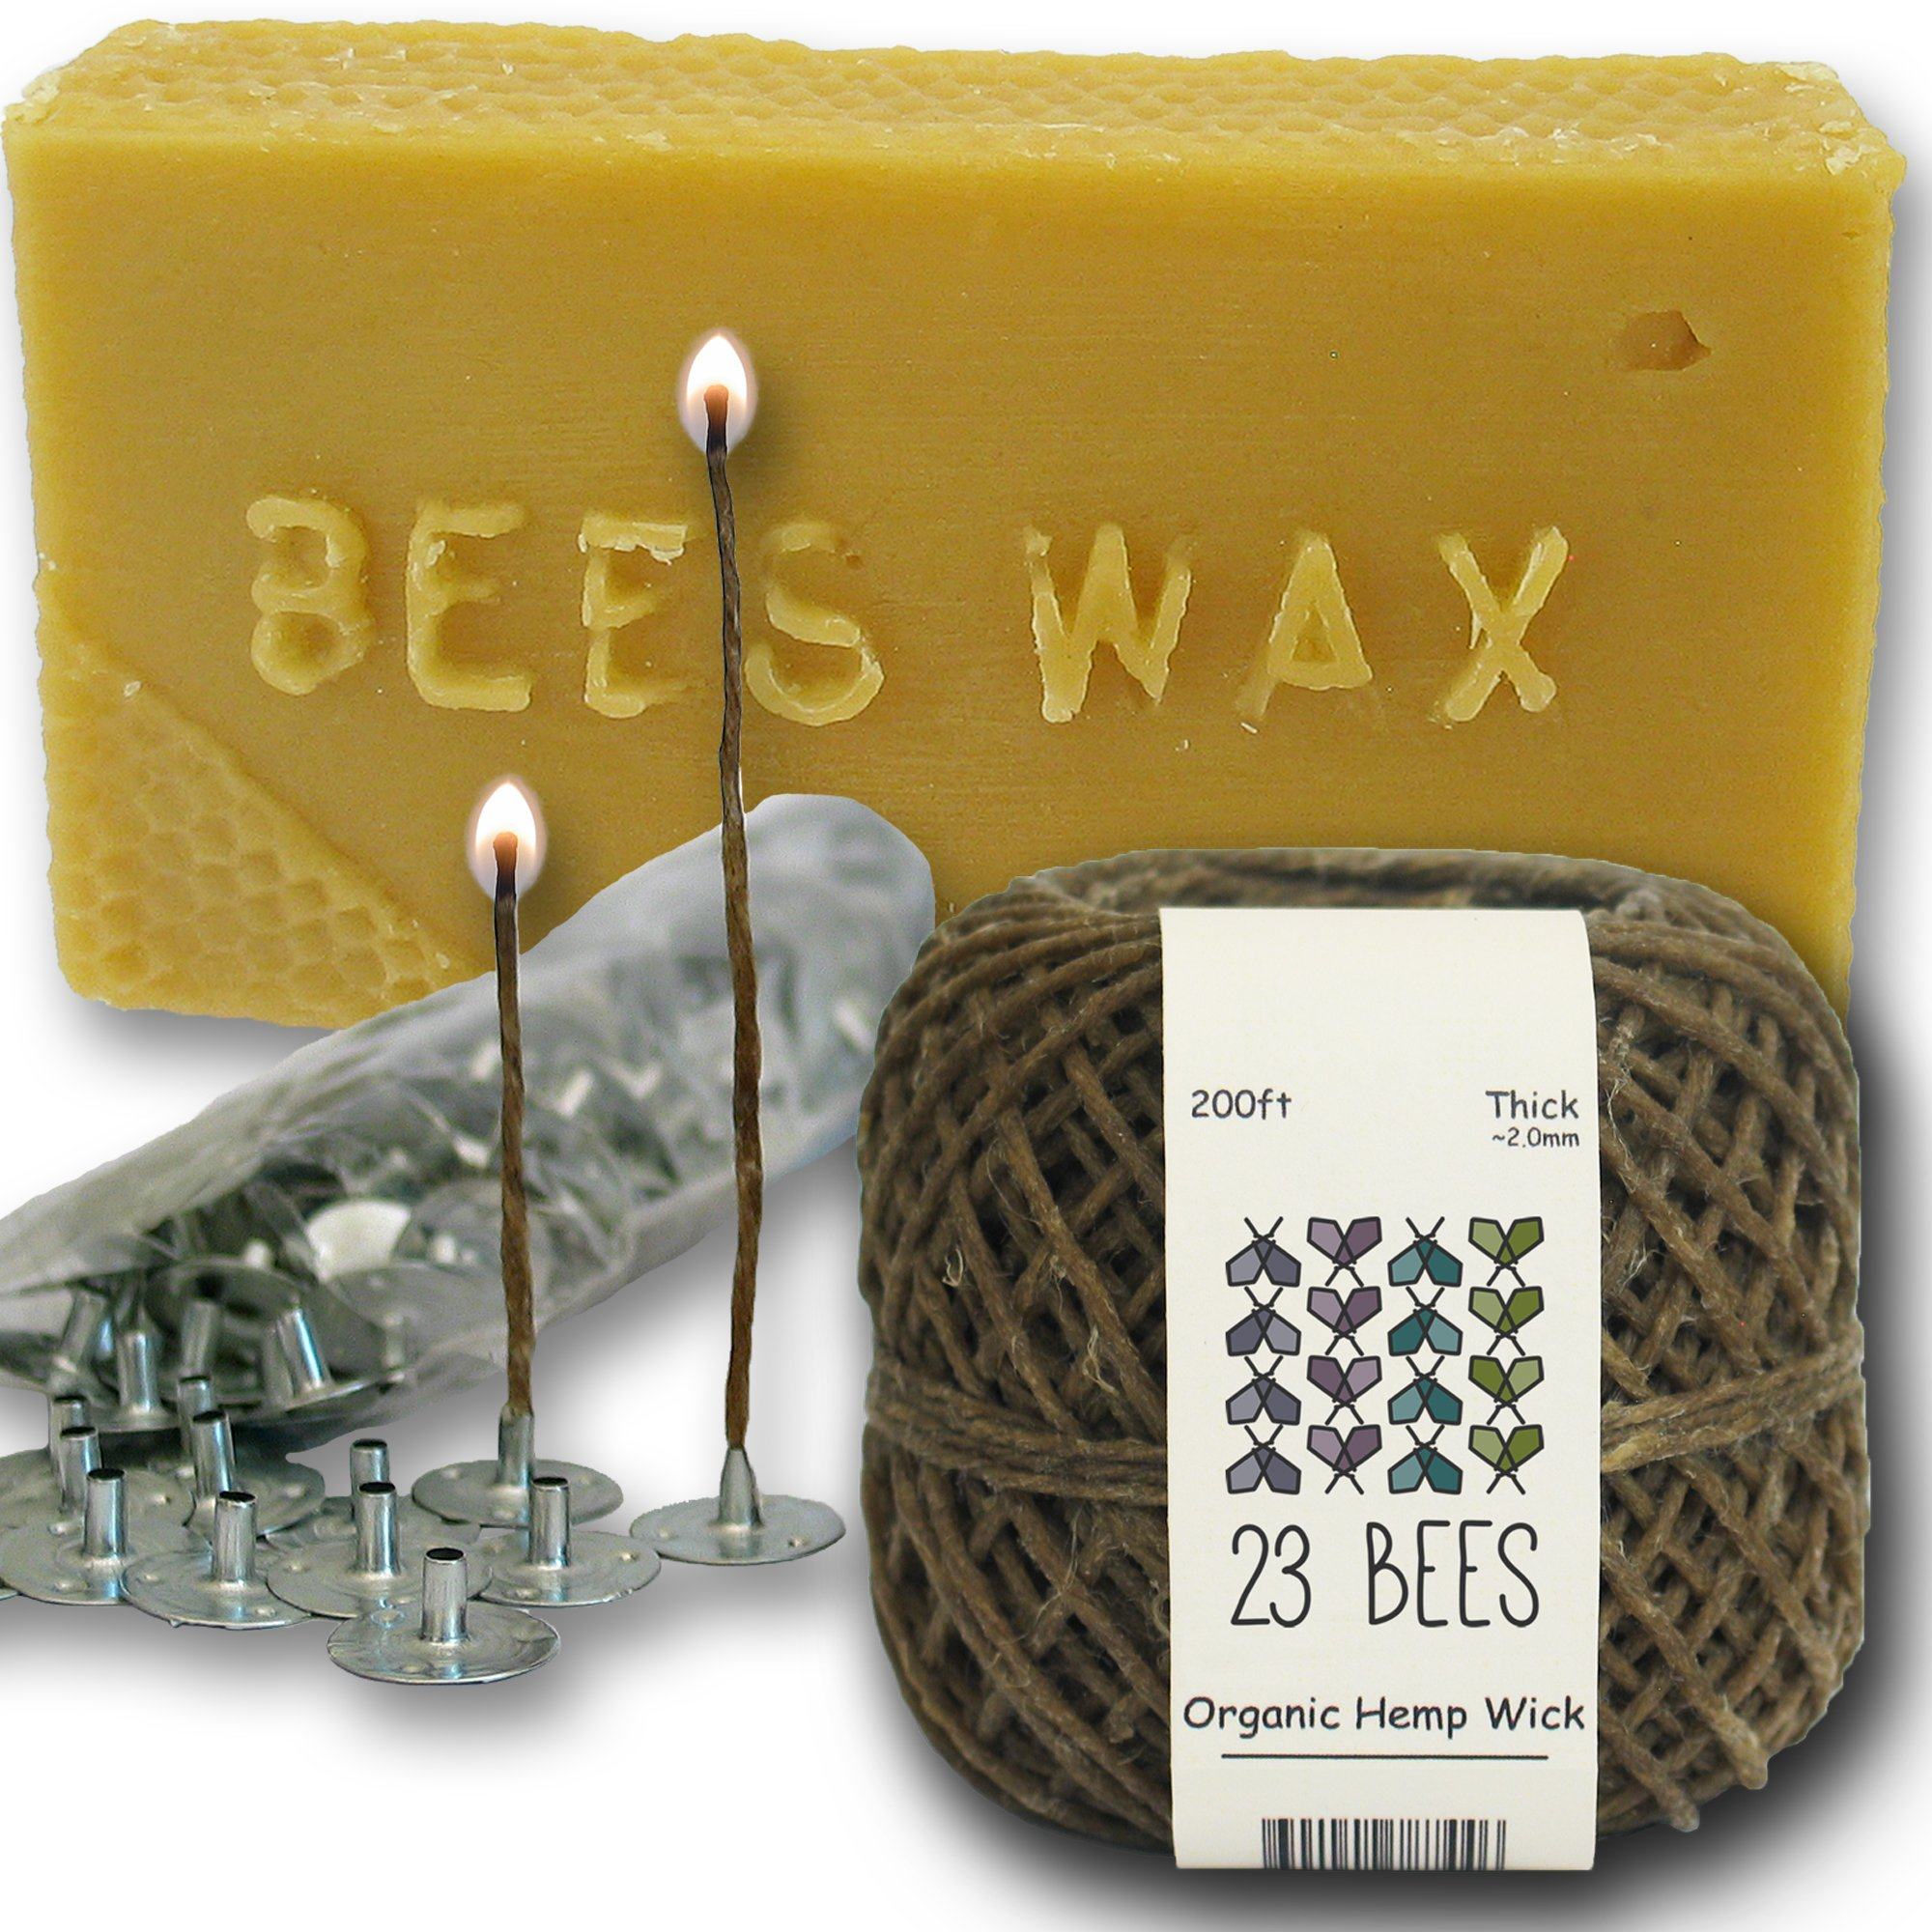 Organic Candle Making Bundle Kit | Organic Hemp Candle Wick + Natural Beeswax + Wick Sustainer Tabs | 23 Bees (200ft(Thick) x 200pc x 2lbs) by 23 Bees